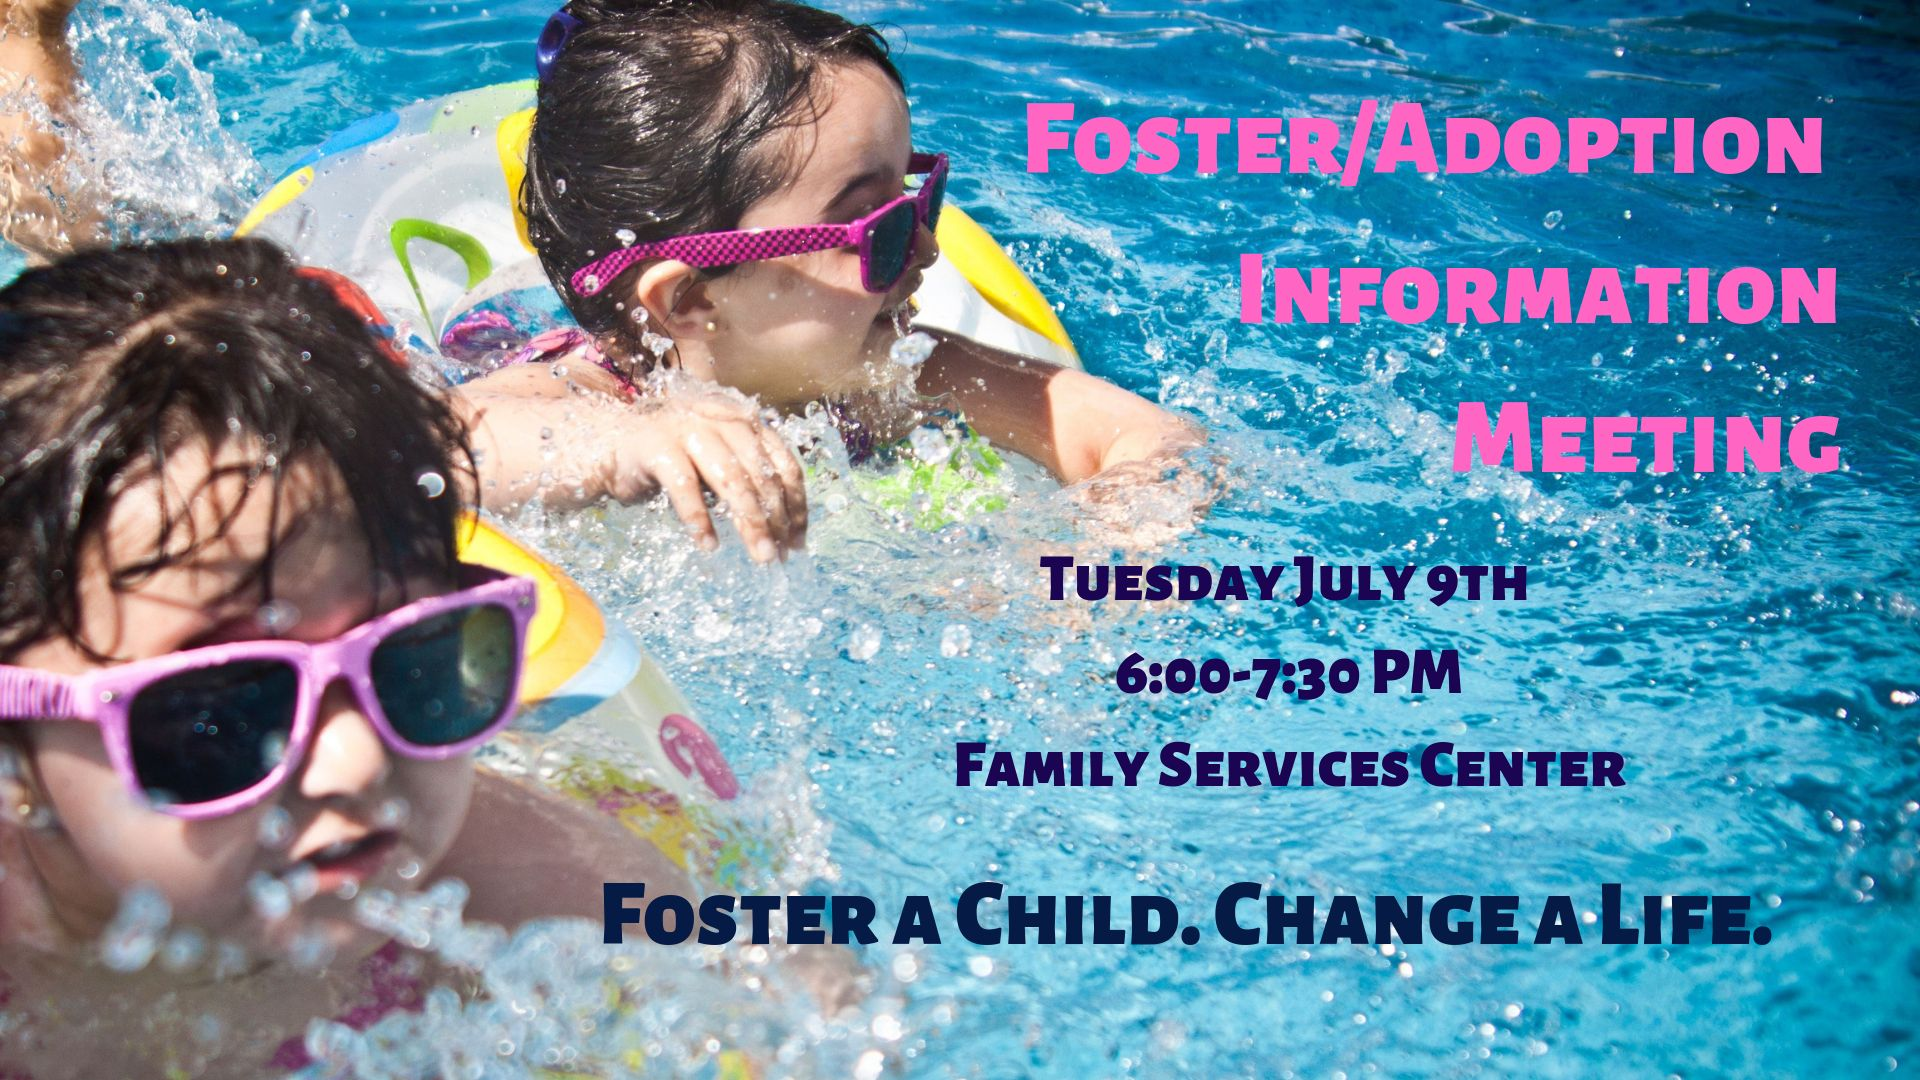 Foster/Adoption Information Meeting July 9 2019